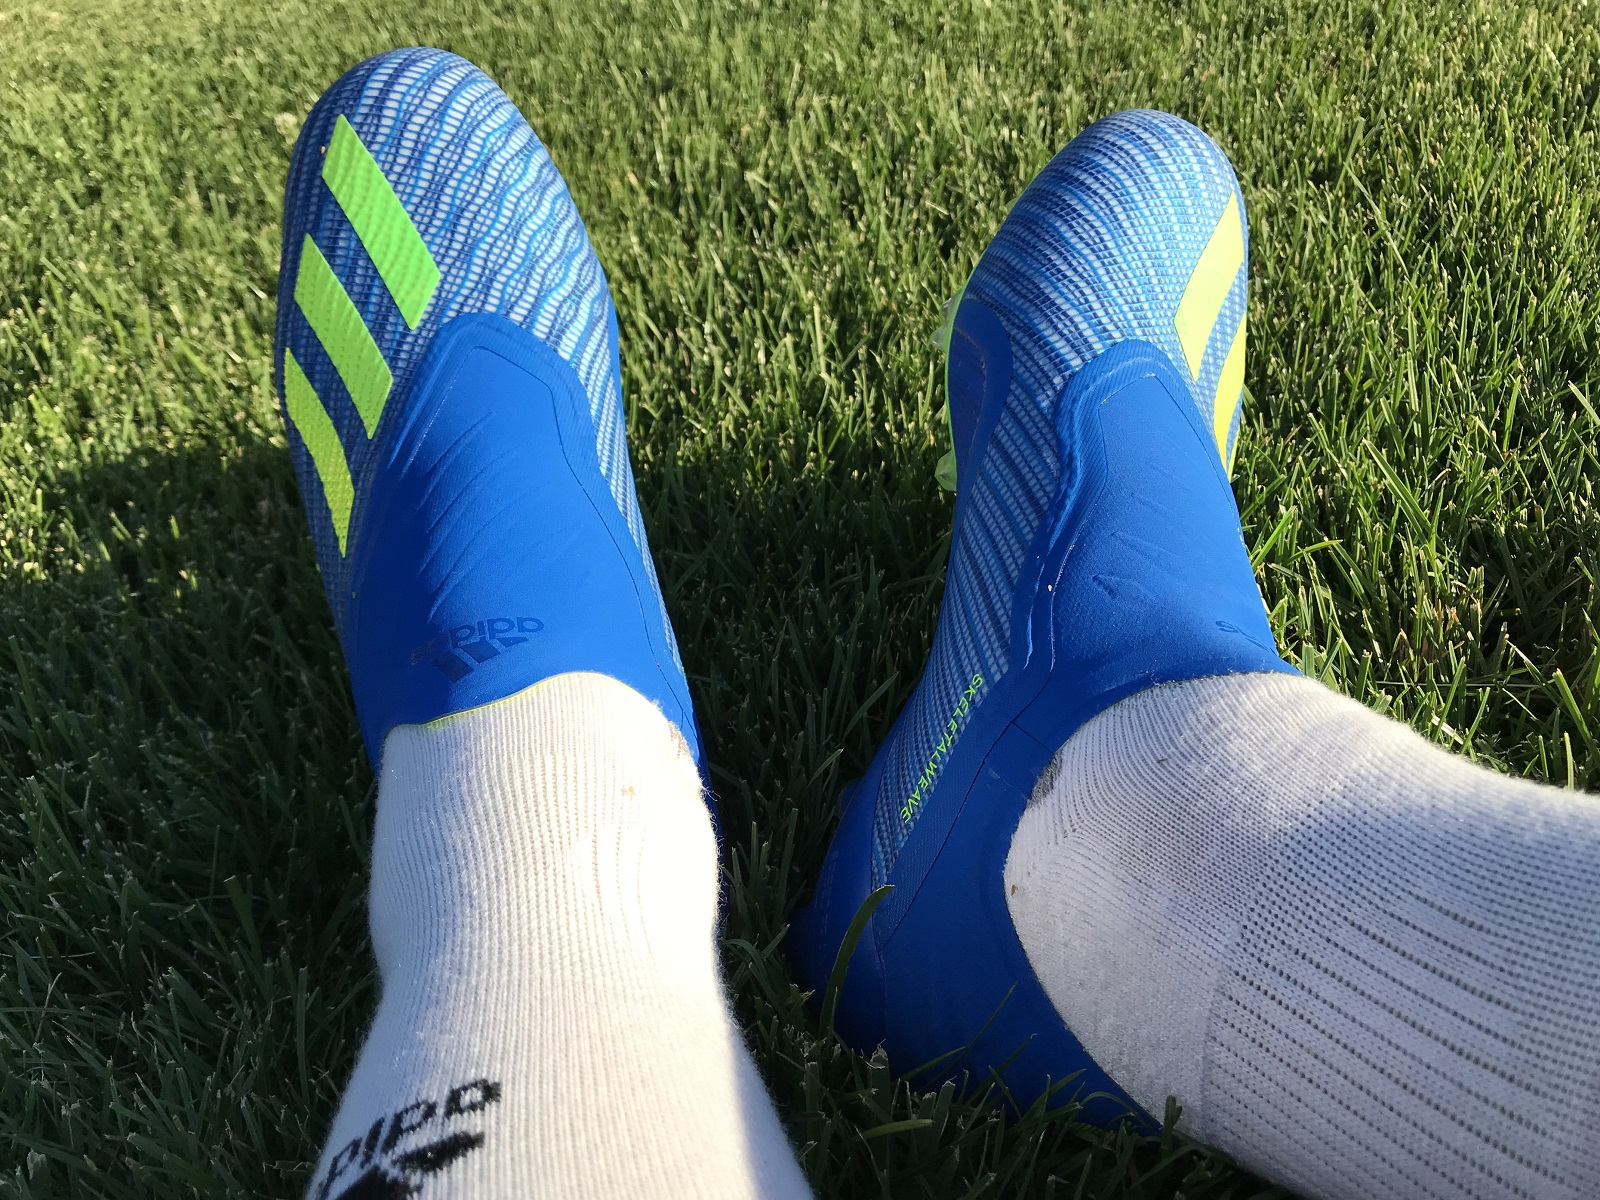 tonto componente caravana  adidas X18+ Purespeed Boot Review | Soccer Cleats 101